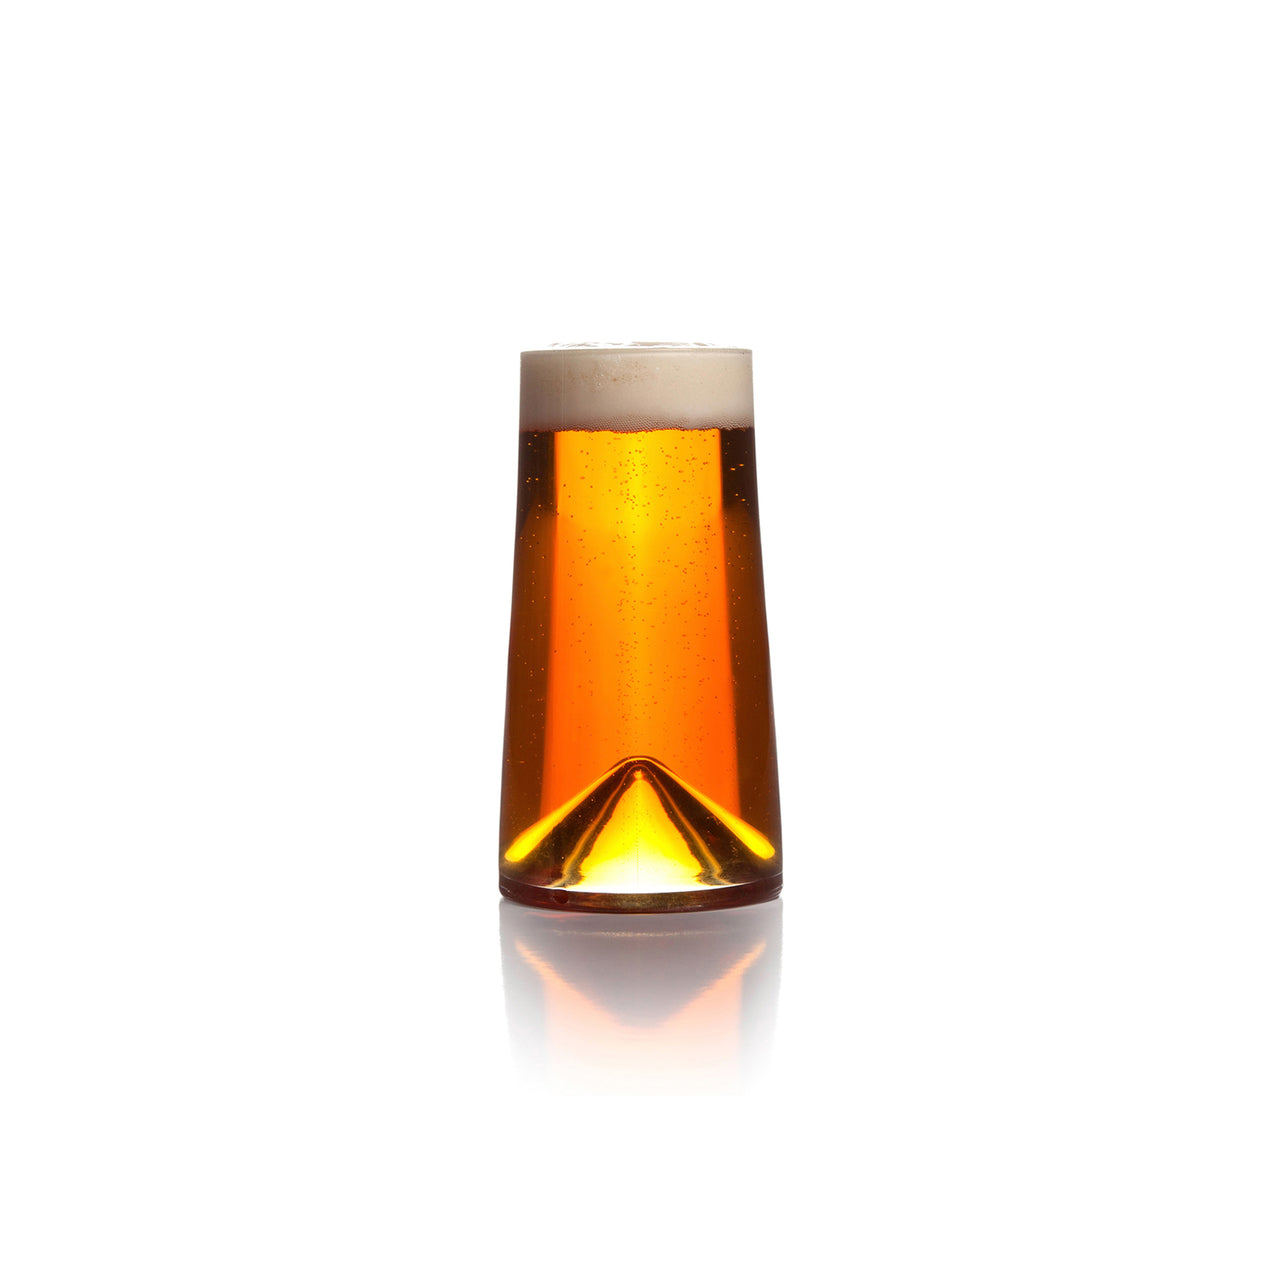 Monti Birra Glass Set